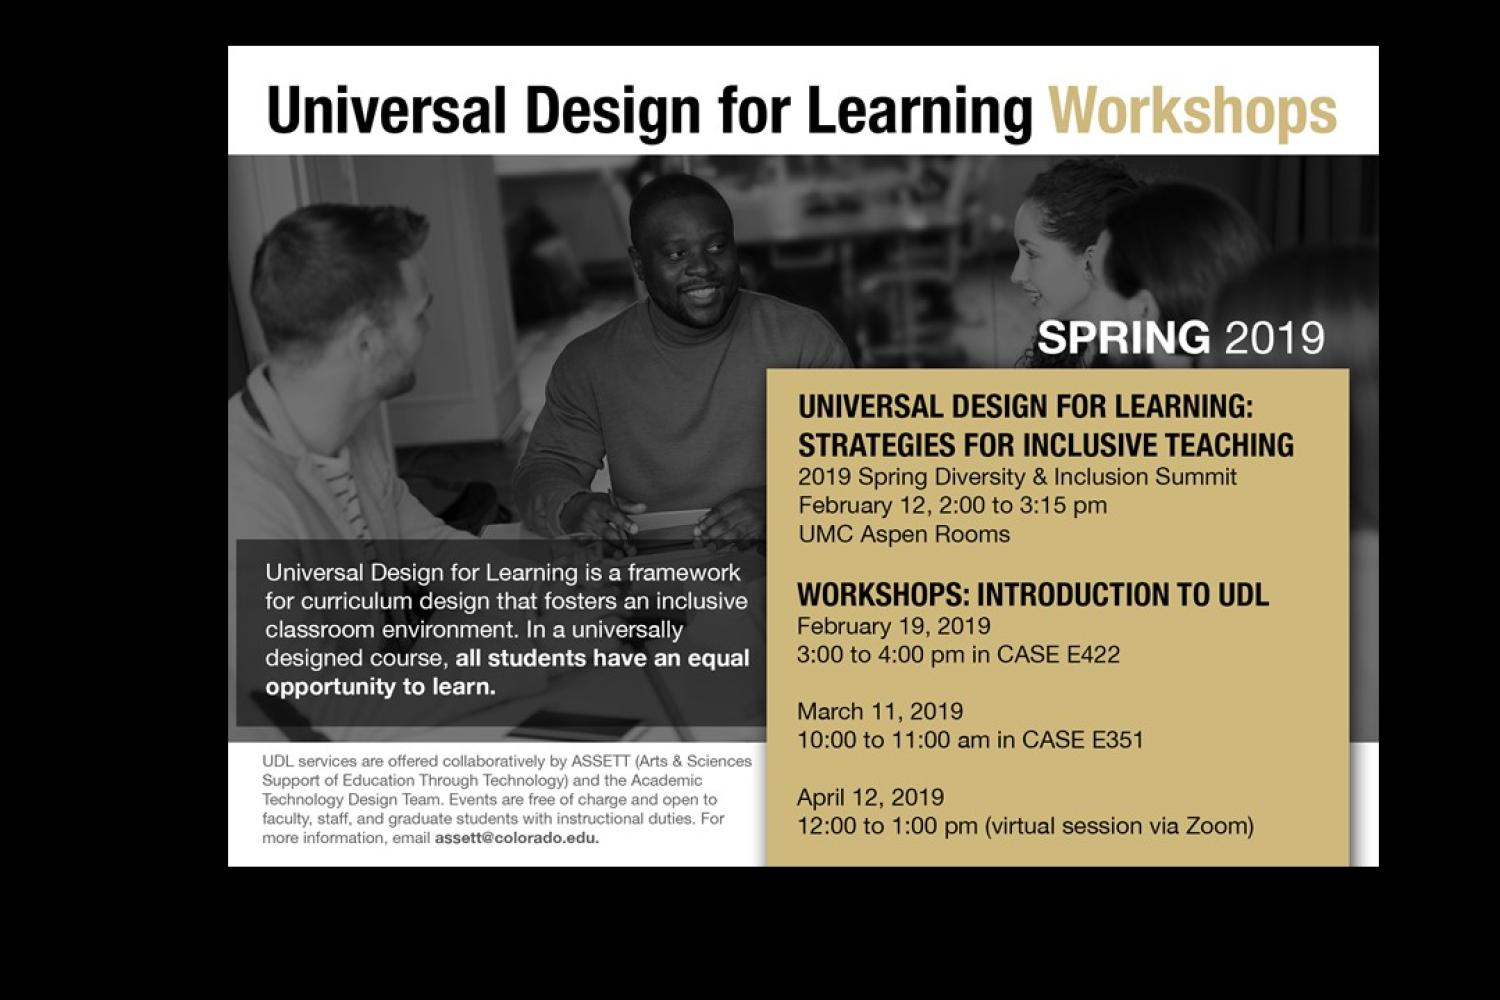 UDL workshops will be offered on Feb. 19, March 11, and April 12. Complete details are available at www.colorado.edu/assett/events.